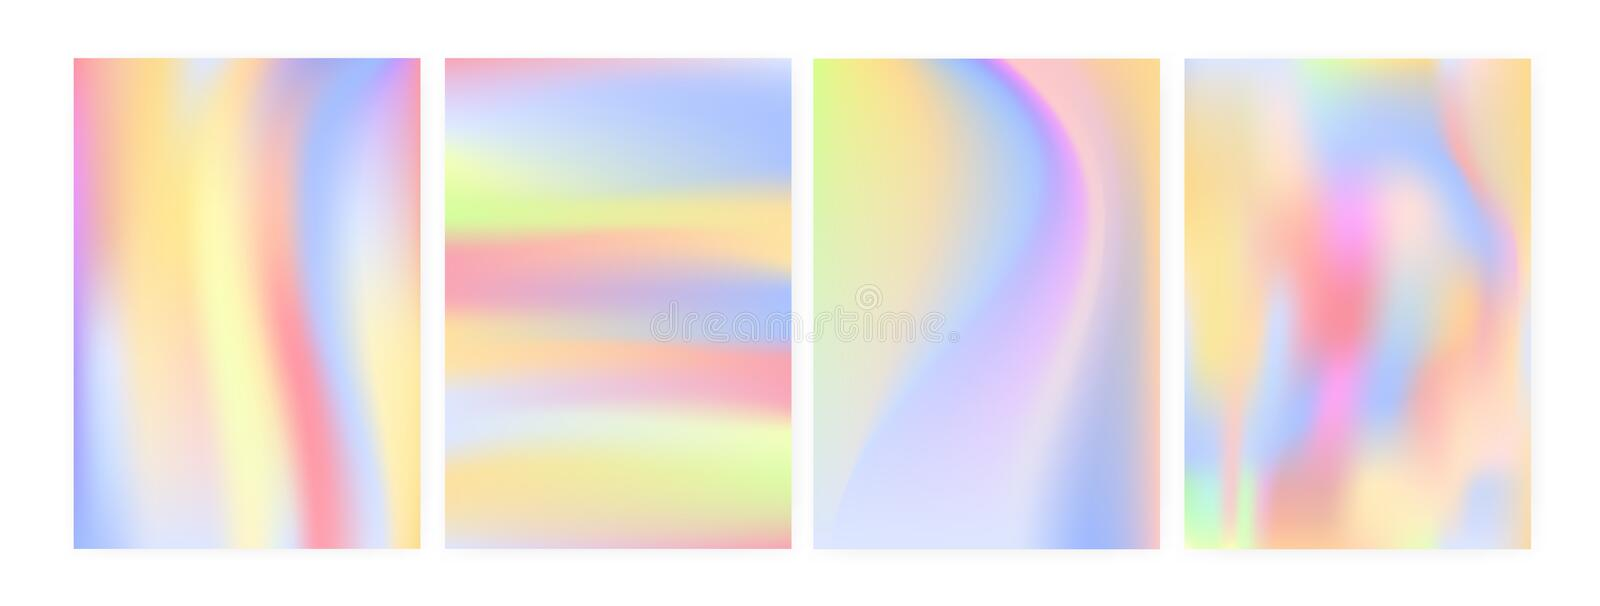 Collection of vertical backgrounds or backdrops with iridescent stains, blur or holographic surface imitation. Bundle of vector illustration